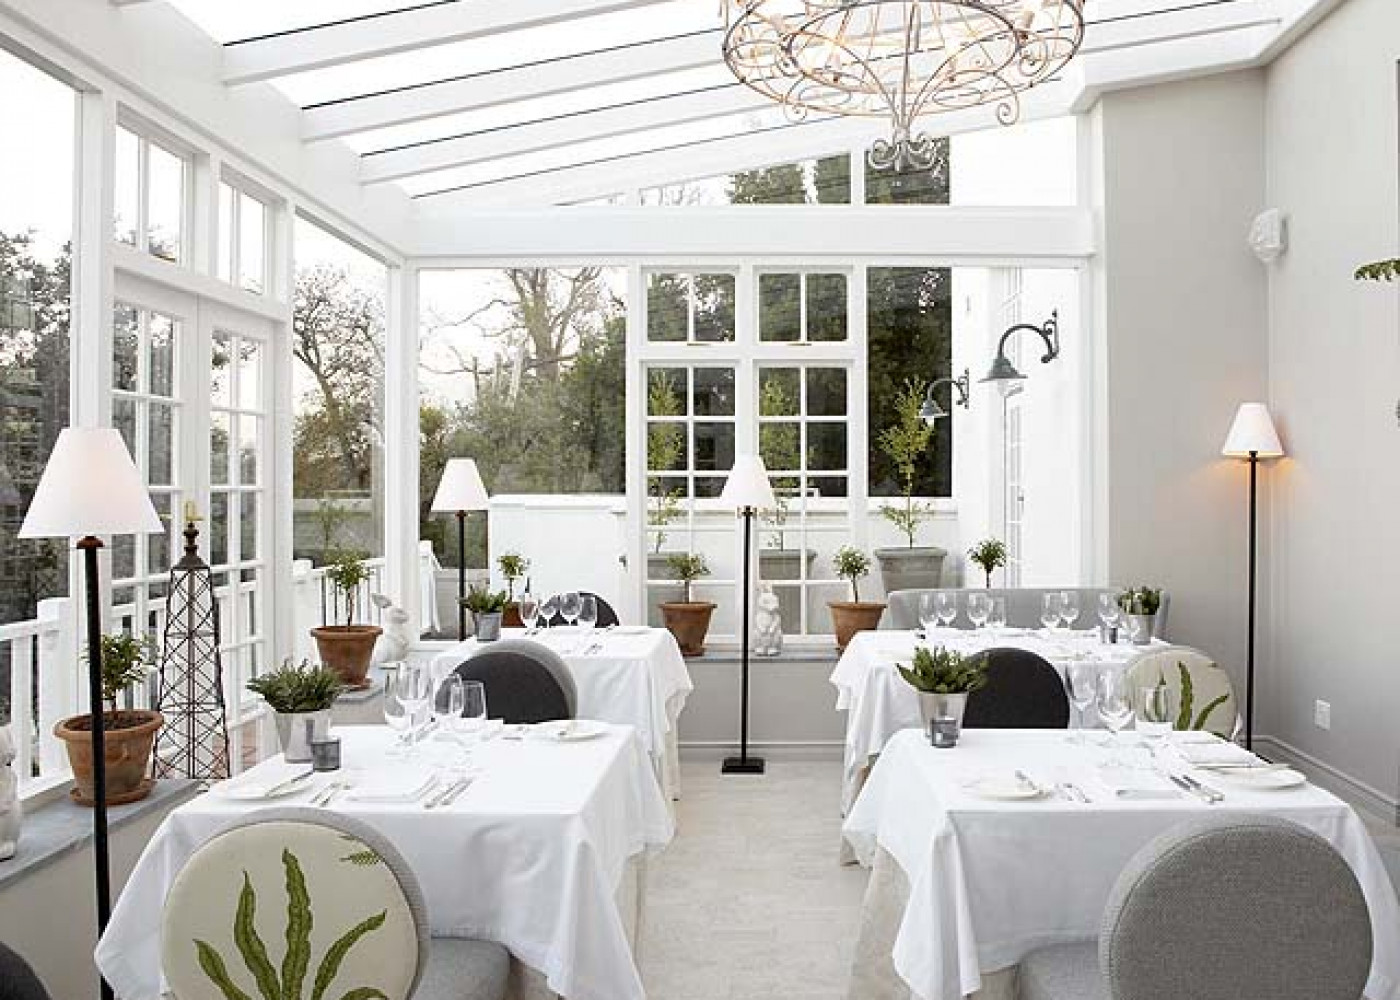 The Cellars-Hohenort - Greenhouse Restaurant